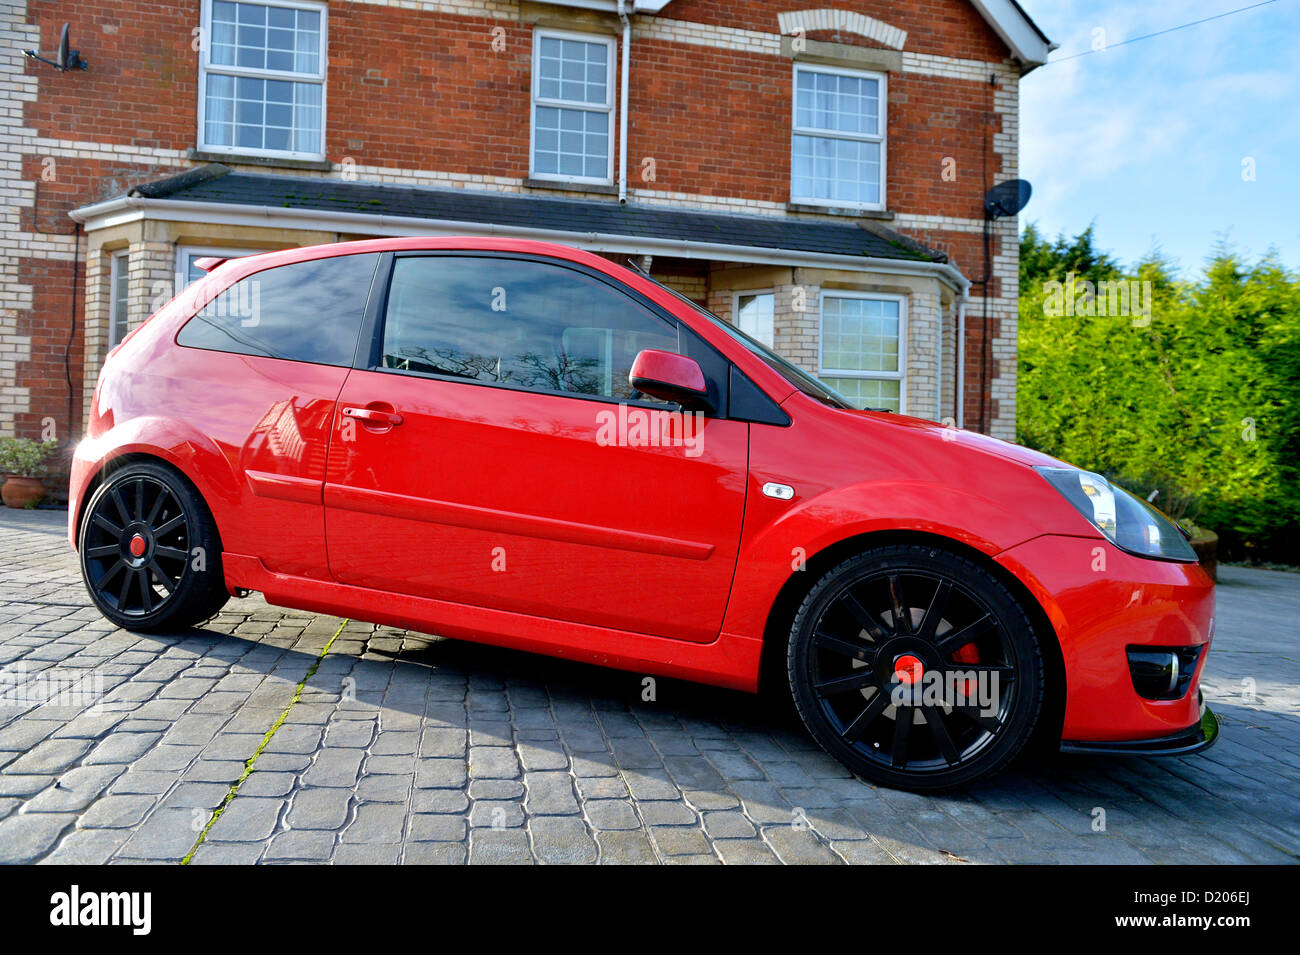 a ford fiesta st sports car 2007 stock photo royalty. Black Bedroom Furniture Sets. Home Design Ideas